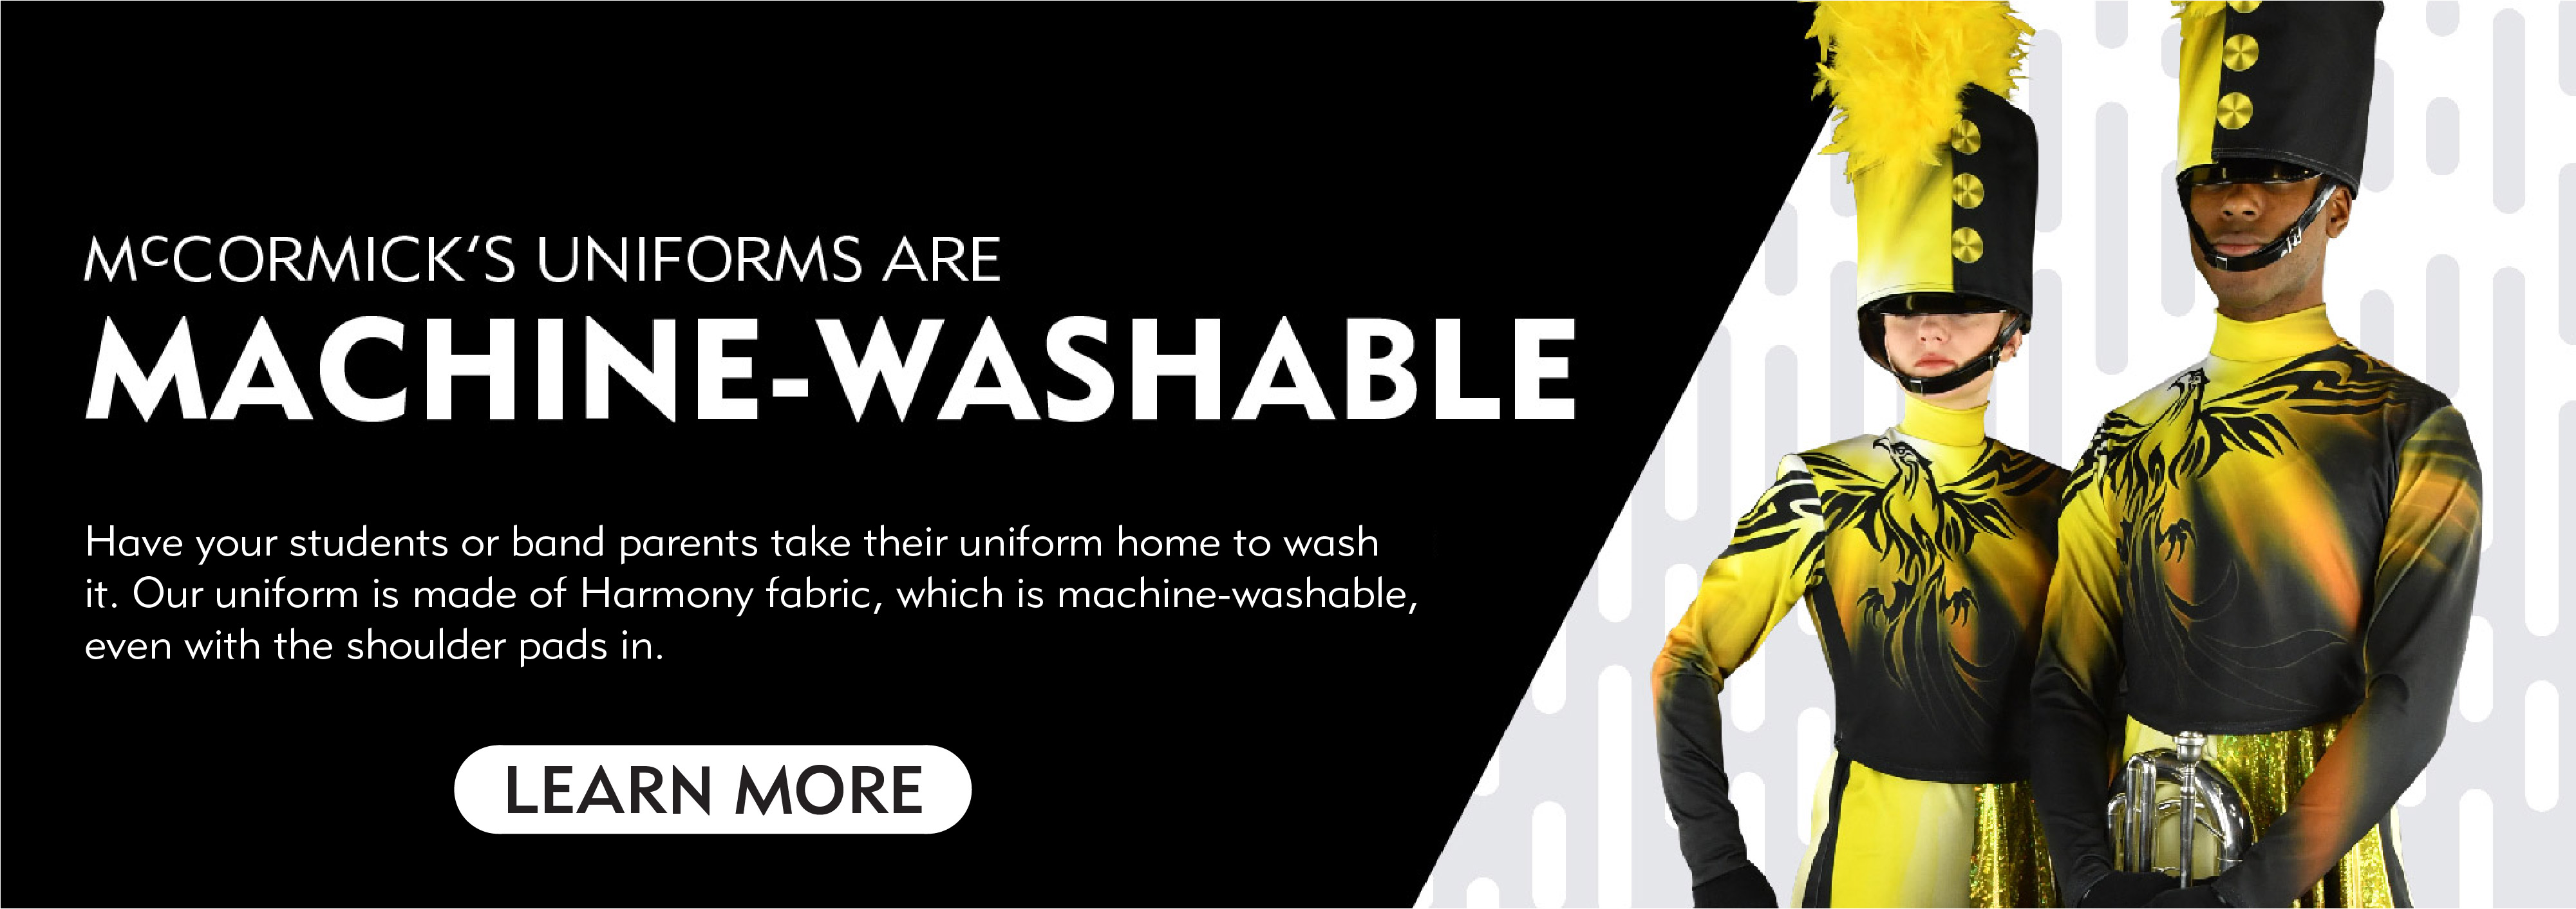 Have your students or band parents take their uniform home to wash it. Our uniform is made of a premium spandex fabric that is machine-washable, even with the shoulder pads on.